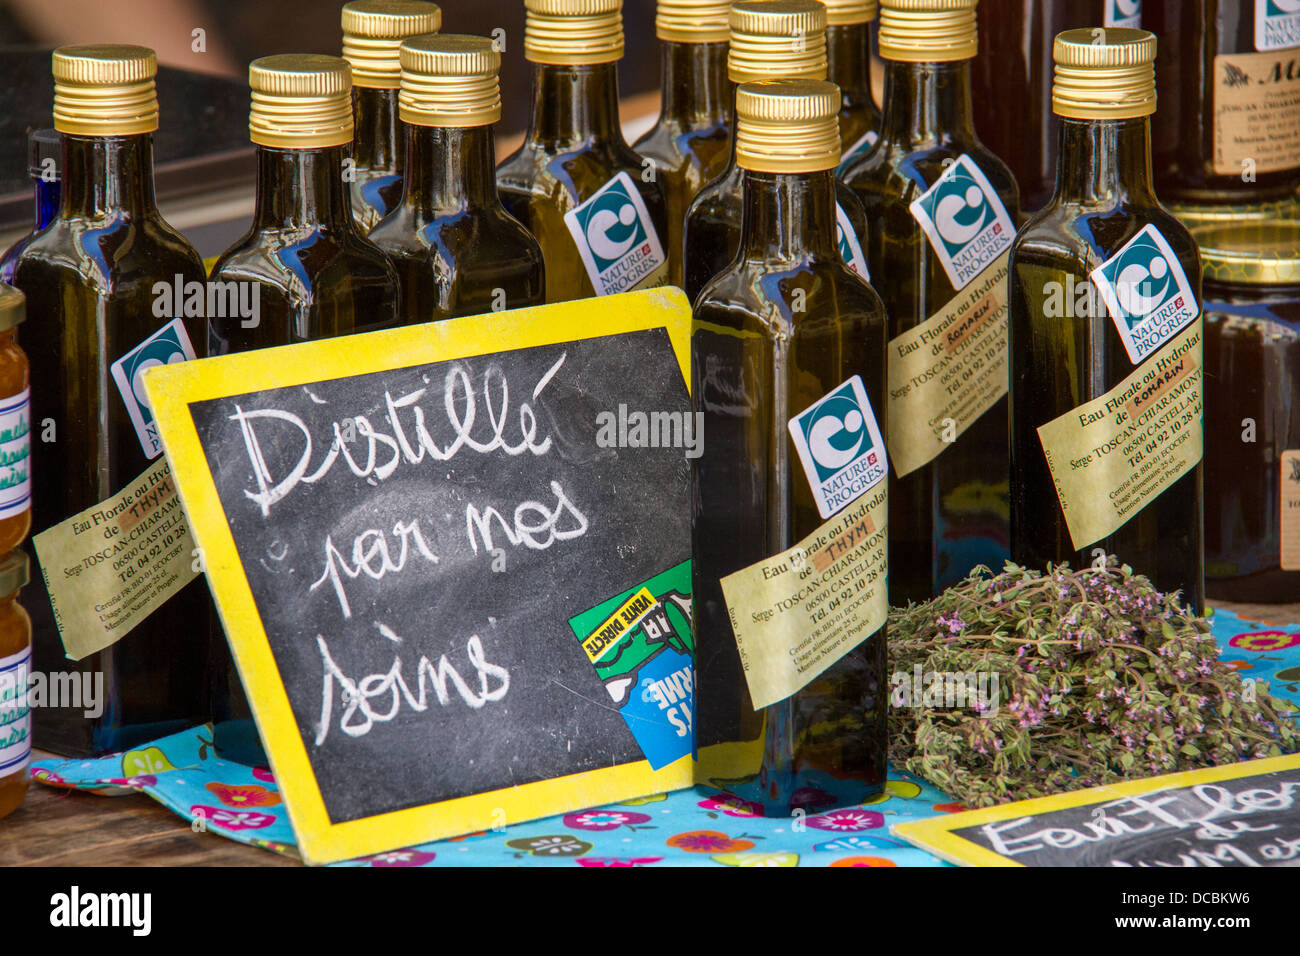 Locally produced olive oil  - 'Made with loving care'. - Stock Image